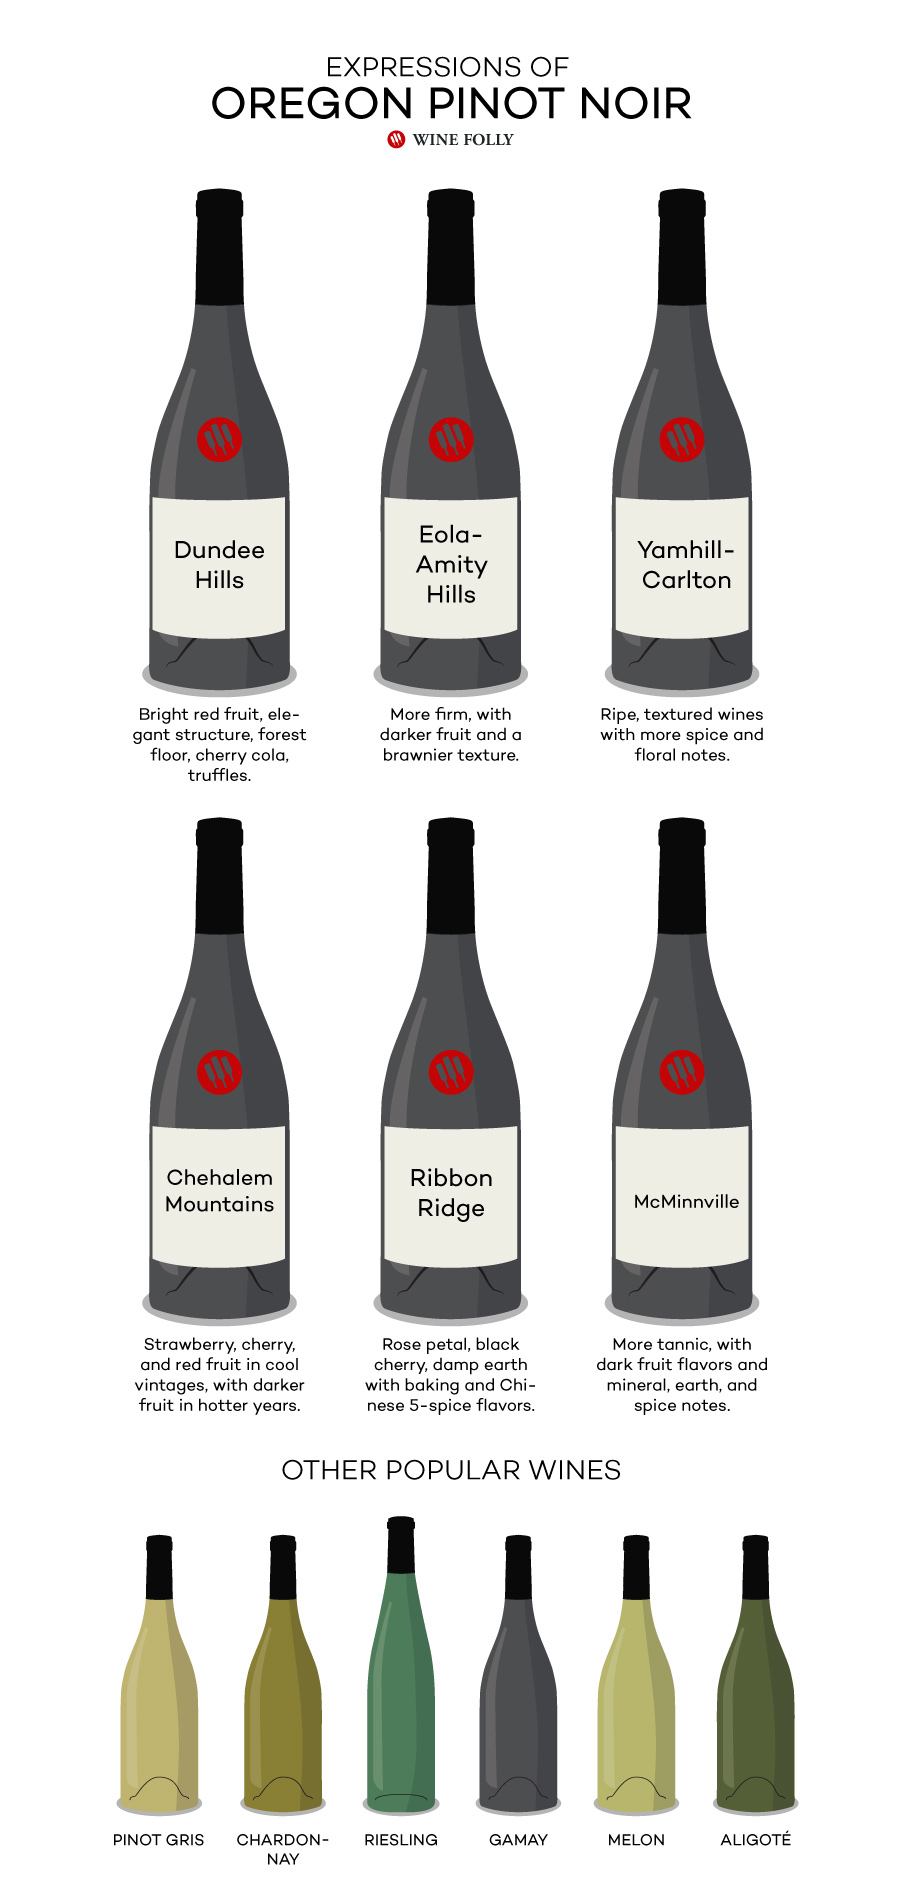 Styles of Oregon Pinot Noir based on sub-region - Dundee Hills, Eola-Amity Hills, Yamhill-Carlton, Ribbon Ridge, Chehalem Mountains, and McMinnville - by Wine Folly